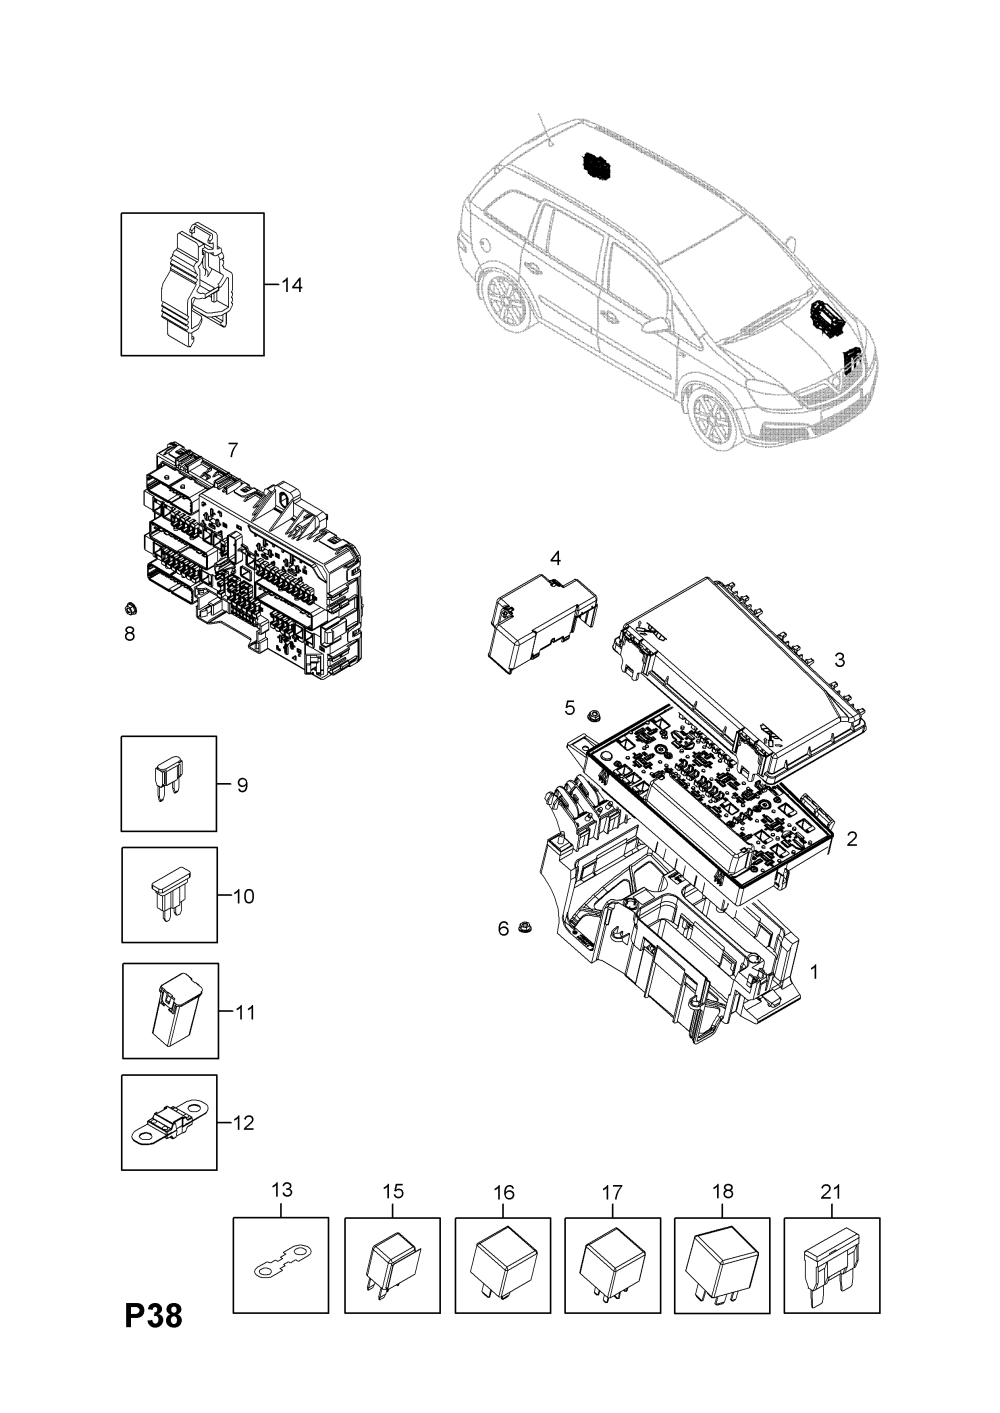 medium resolution of opel zafira b fuse box u003e opel epc online u003e nemigaparts com opel corsa b fuse box diagram opel zafira b fuse box